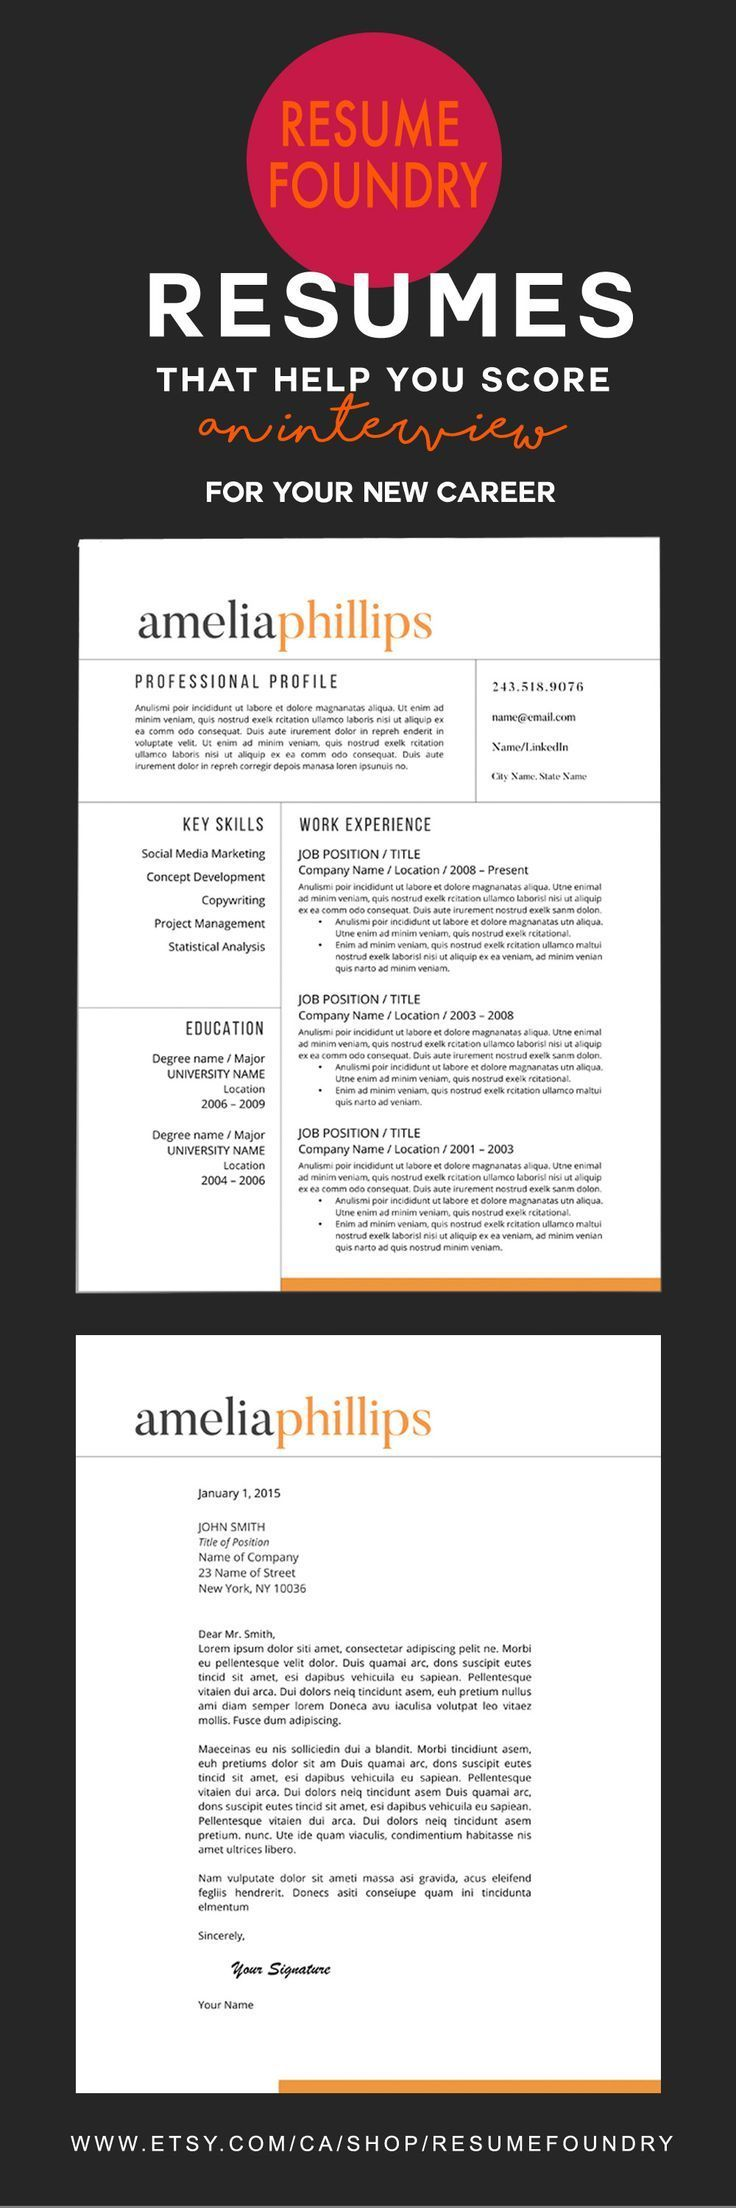 Elegant Resume Template For Use With Microsoft Word  Remember